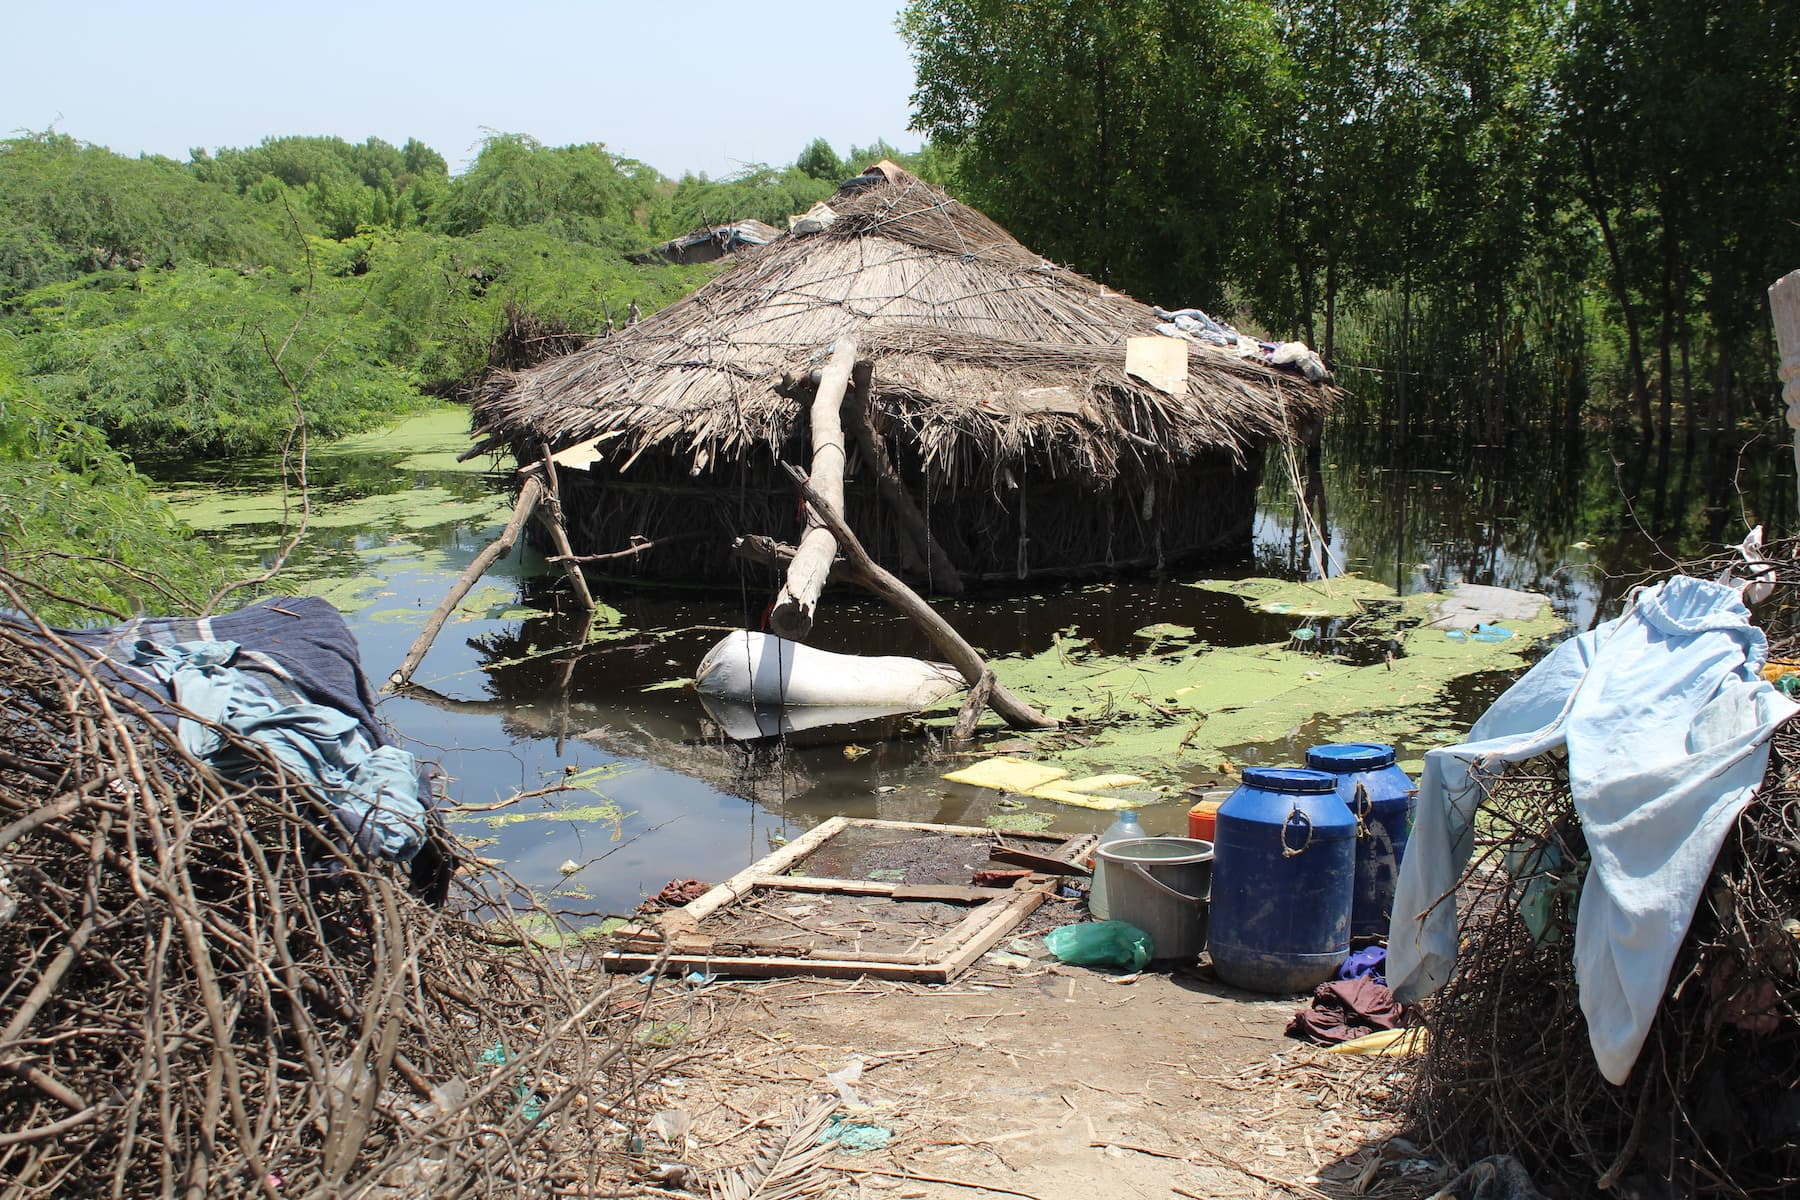 A submerged home in UC-1 of Mirpurkhas city. Hundreds of thousands of people have been forced to abandon their homes and take shelter in make-shift tents on the roads due to the flooding caused by the recent rains. — Photo by author